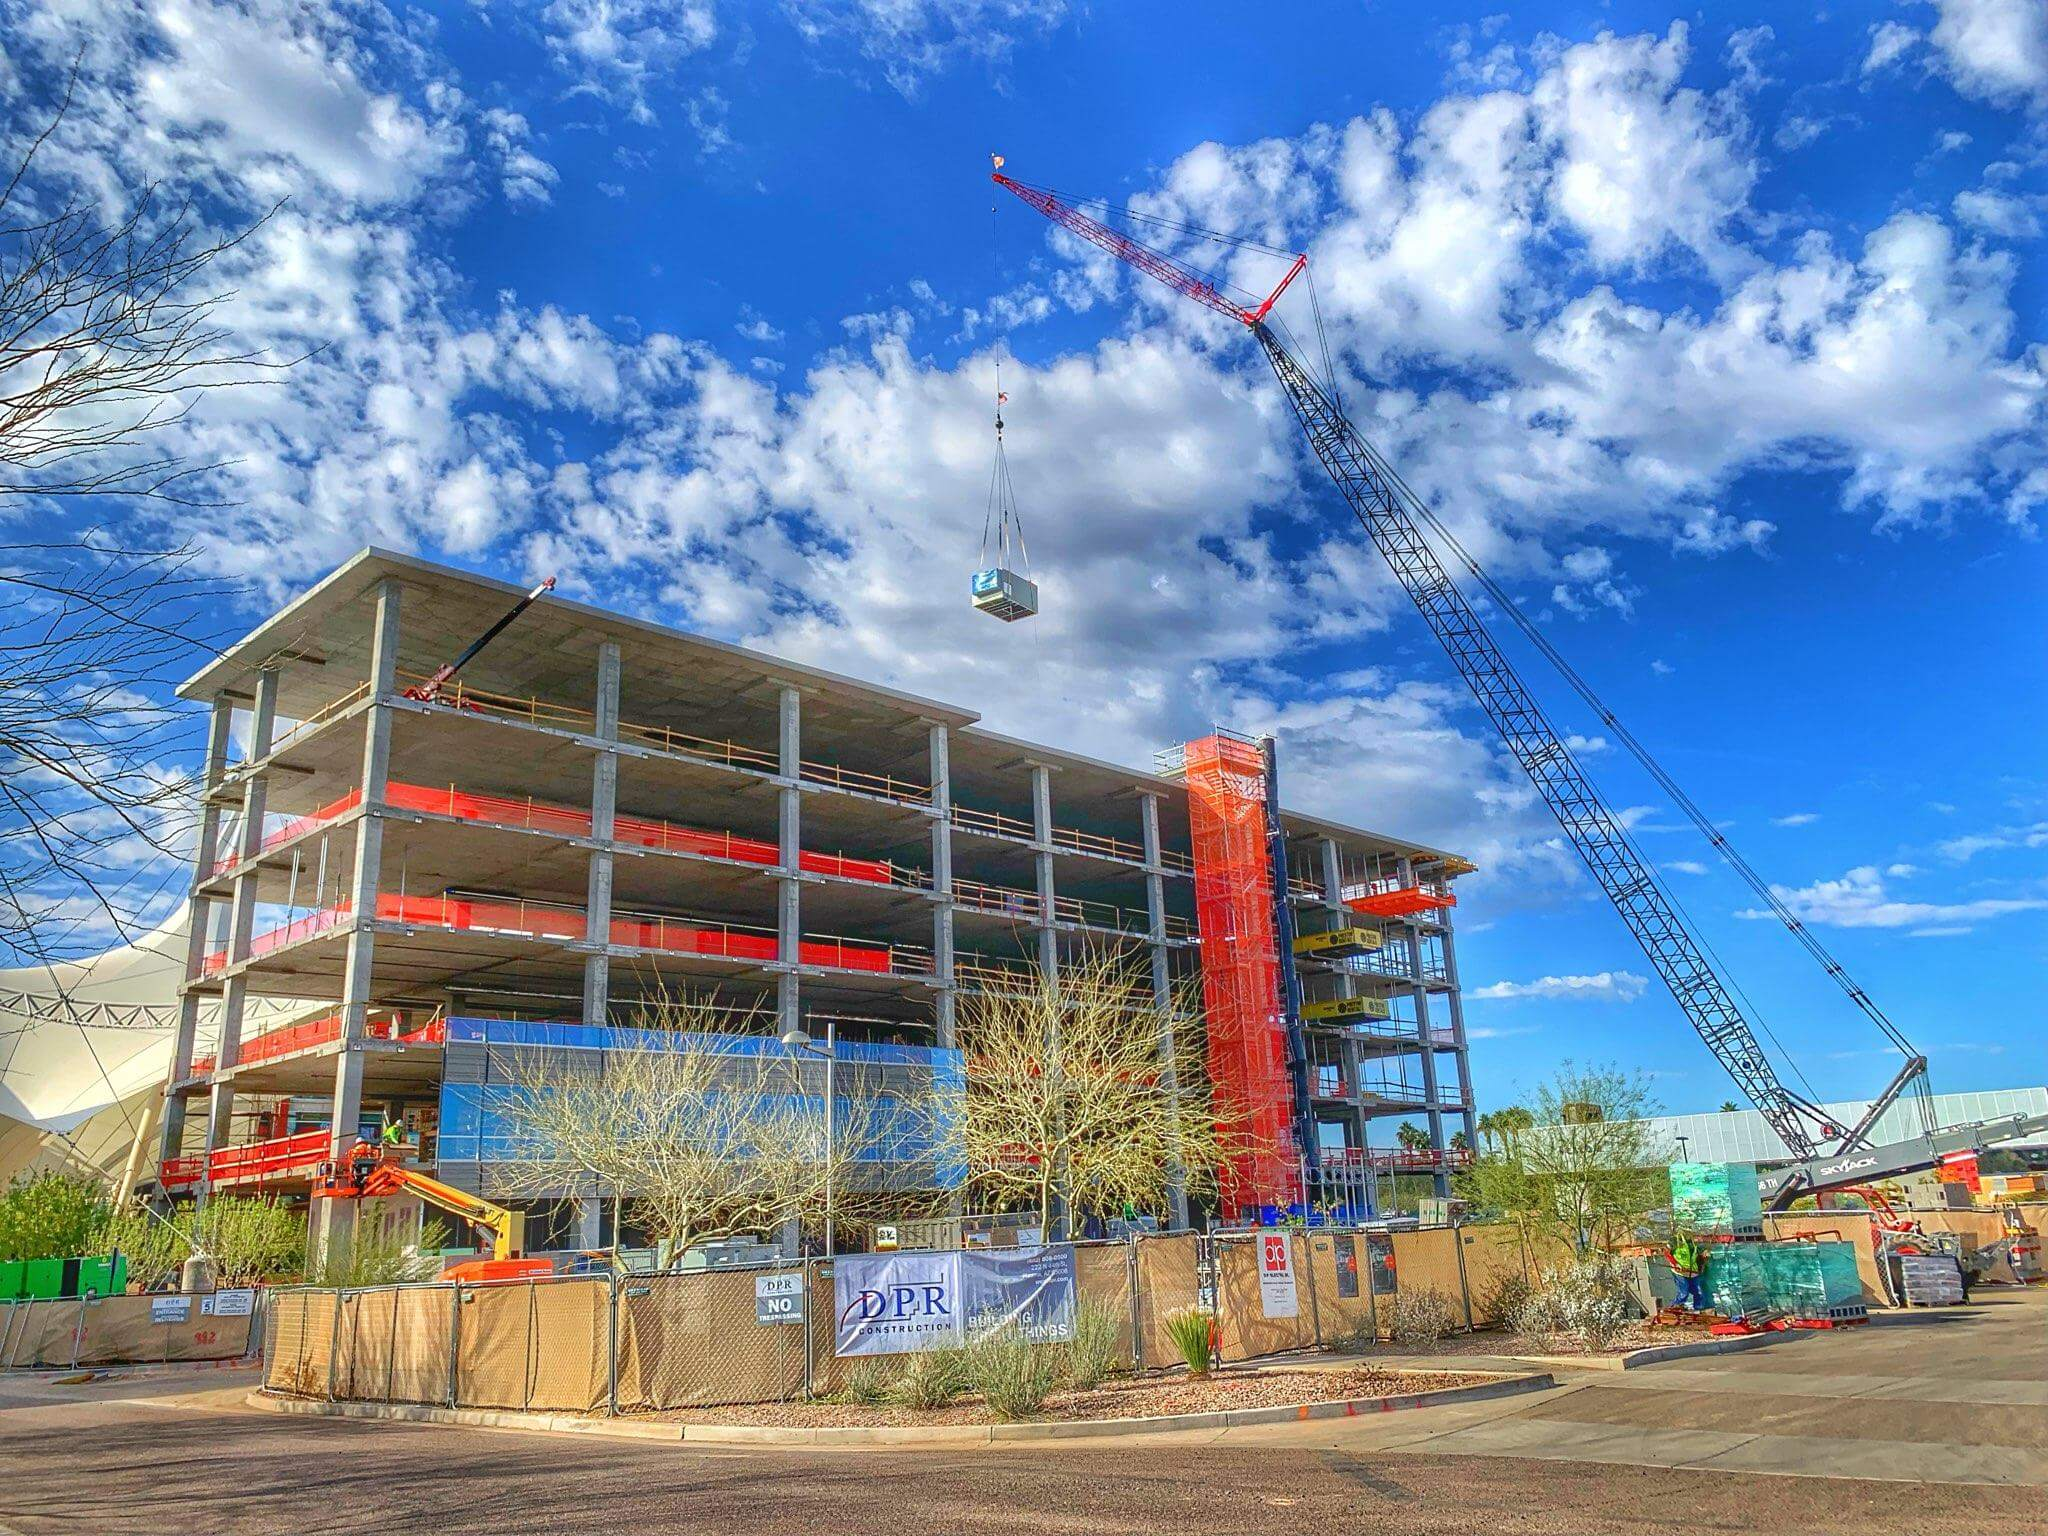 SkySong 5 | Commercial Real Estate Phoenix